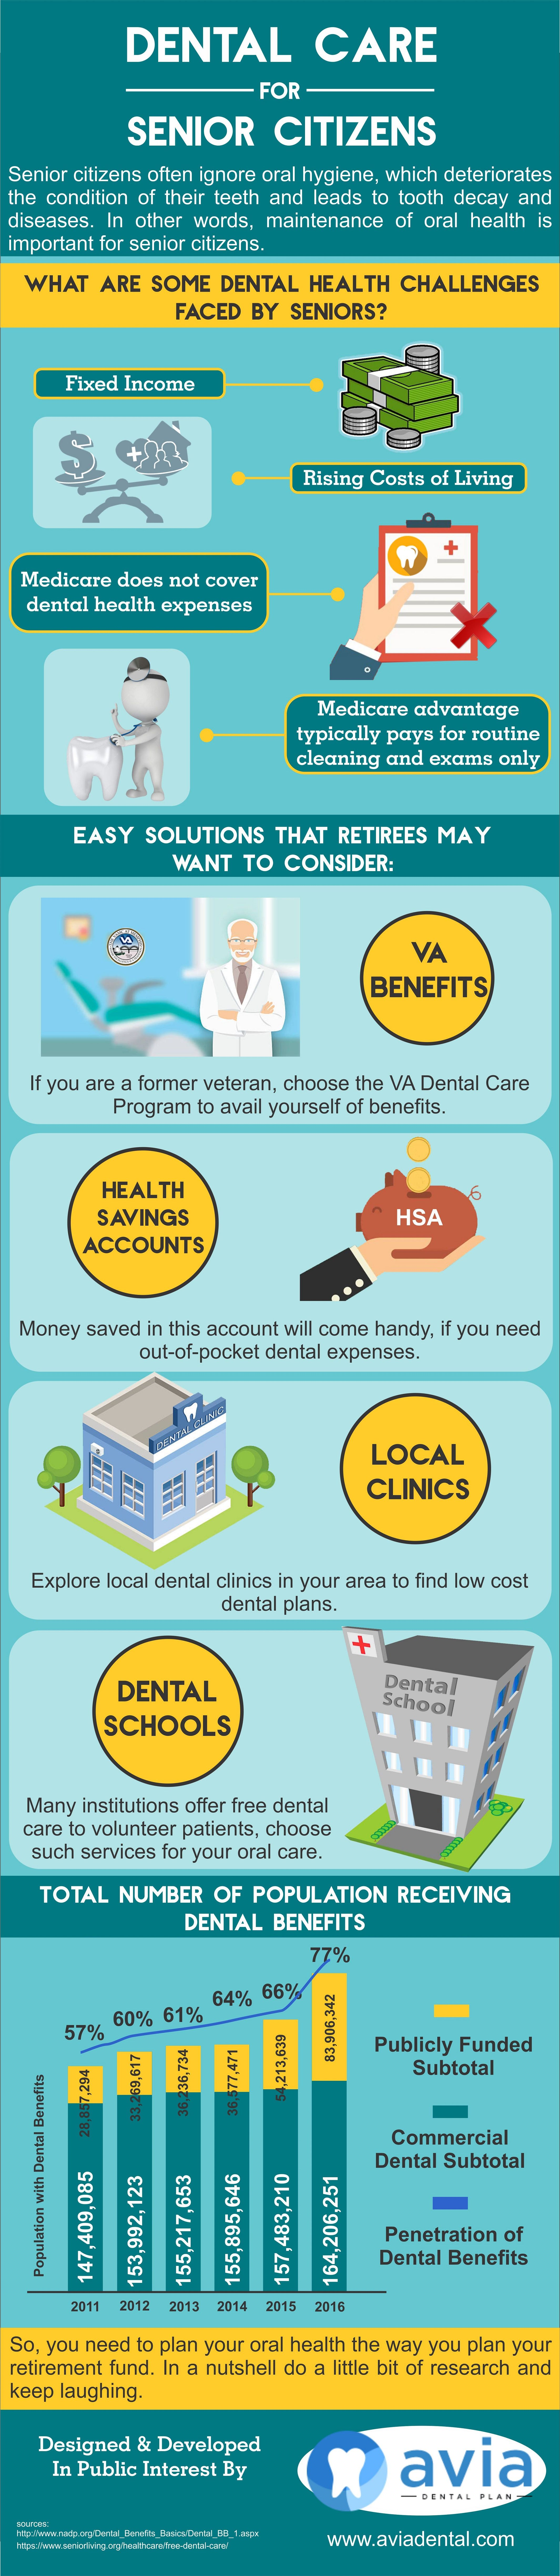 Discount Dental Plans for Families, Individuals, Groups